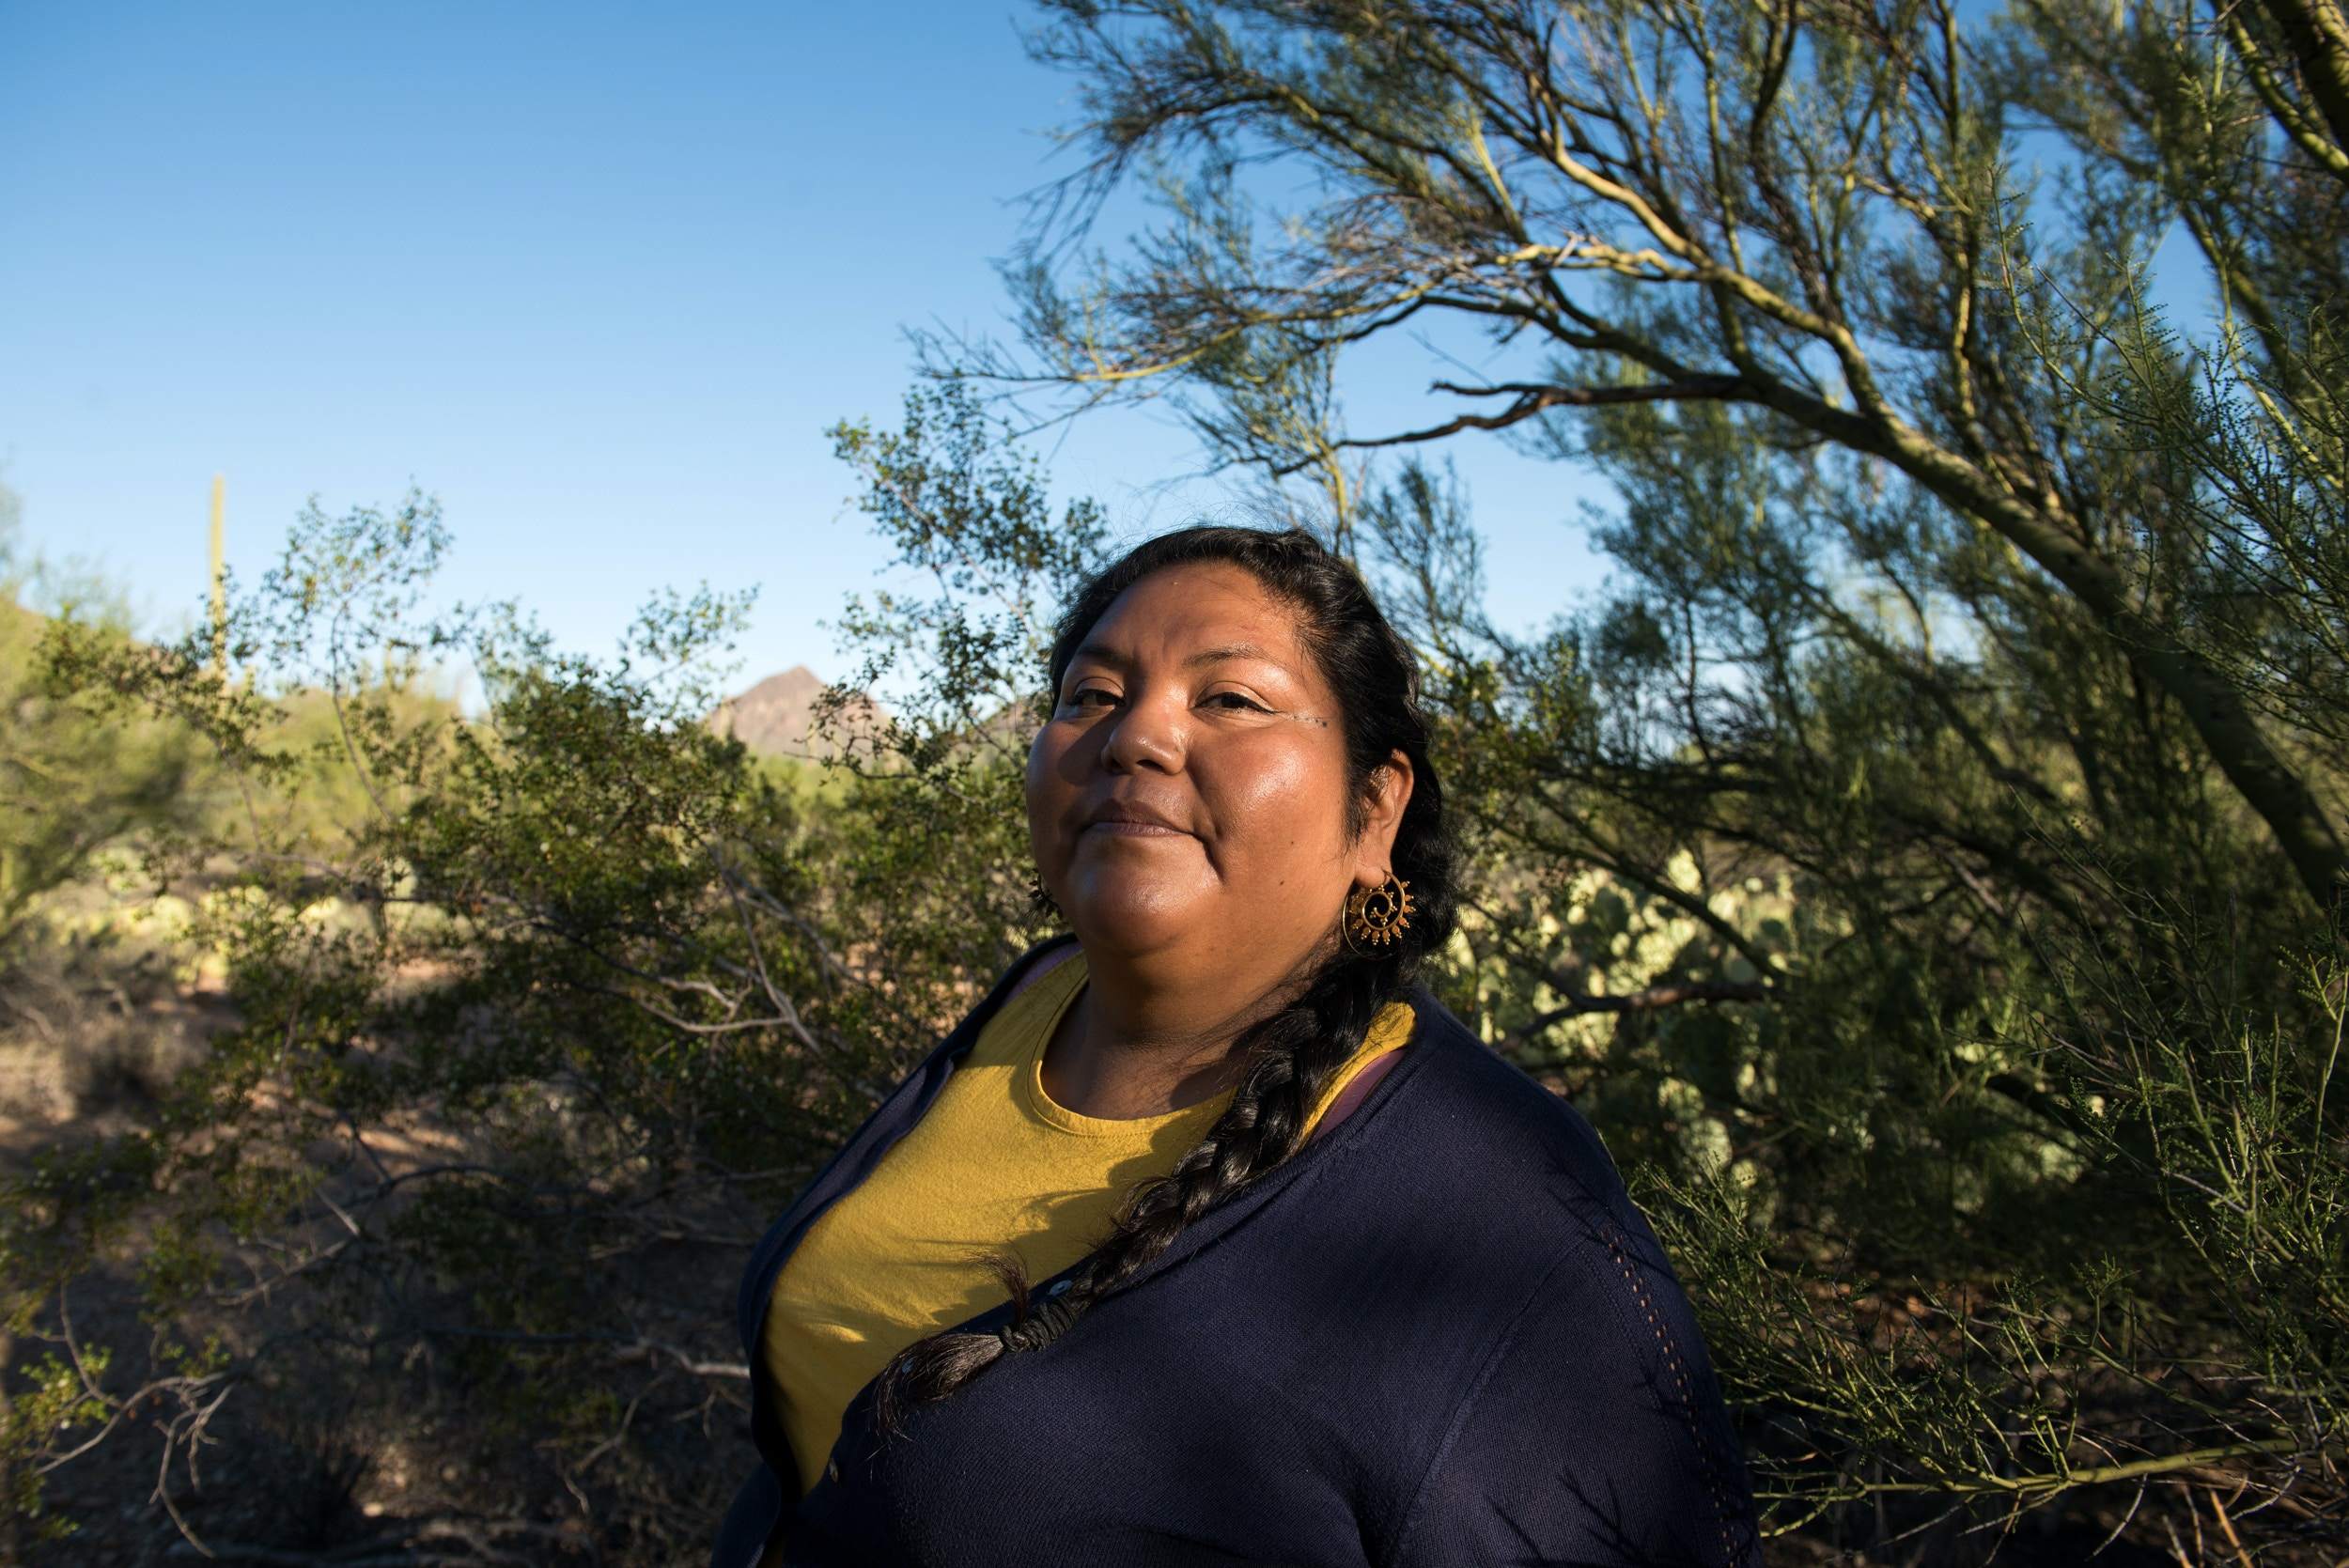 Tucson, Ariz. October 1, 2019: Amy Juan amid the desert flora of Saguaro National Park in Tucson, Ariz. on Tuesday October 1, 2019. (Ash Ponders for the The Intercept)